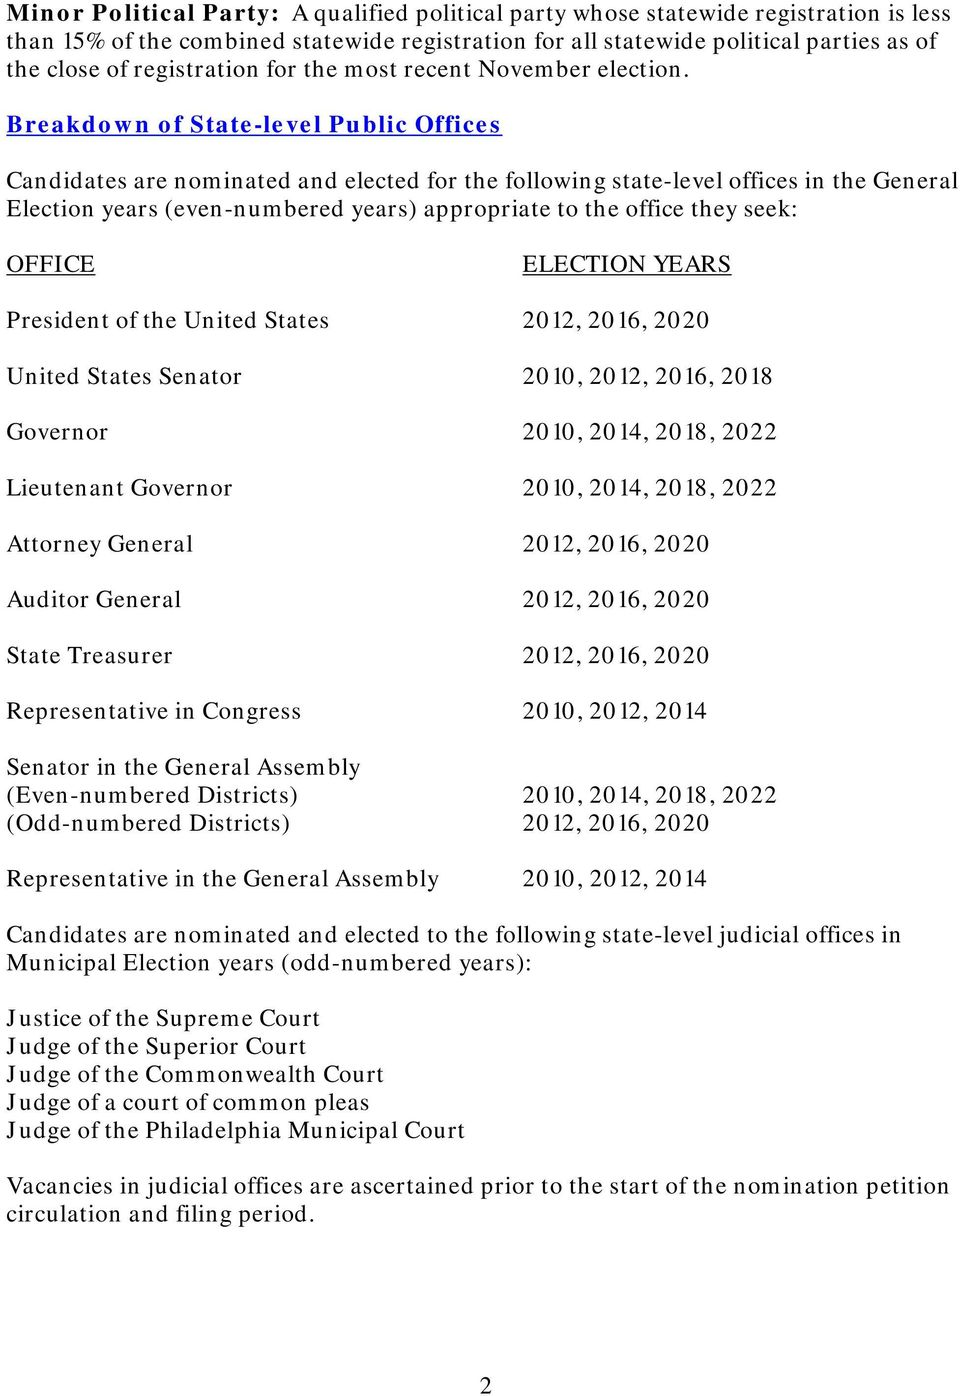 Breakdown of State-level Public Offices Candidates are nominated and elected for the following state-level offices in the General Election years (even-numbered years) appropriate to the office they